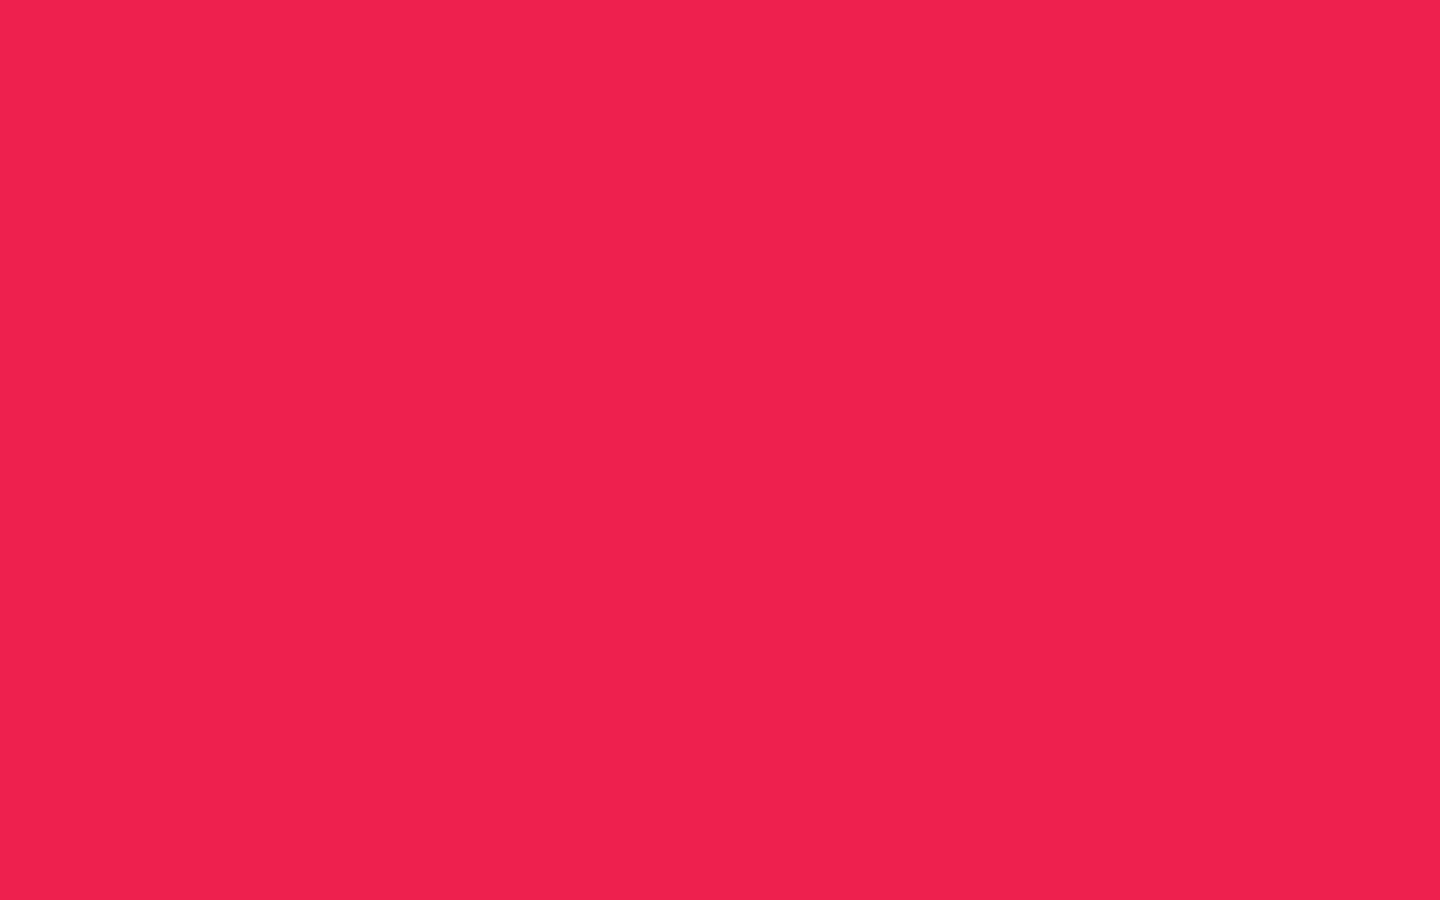 1440x900 Red Crayola Solid Color Background